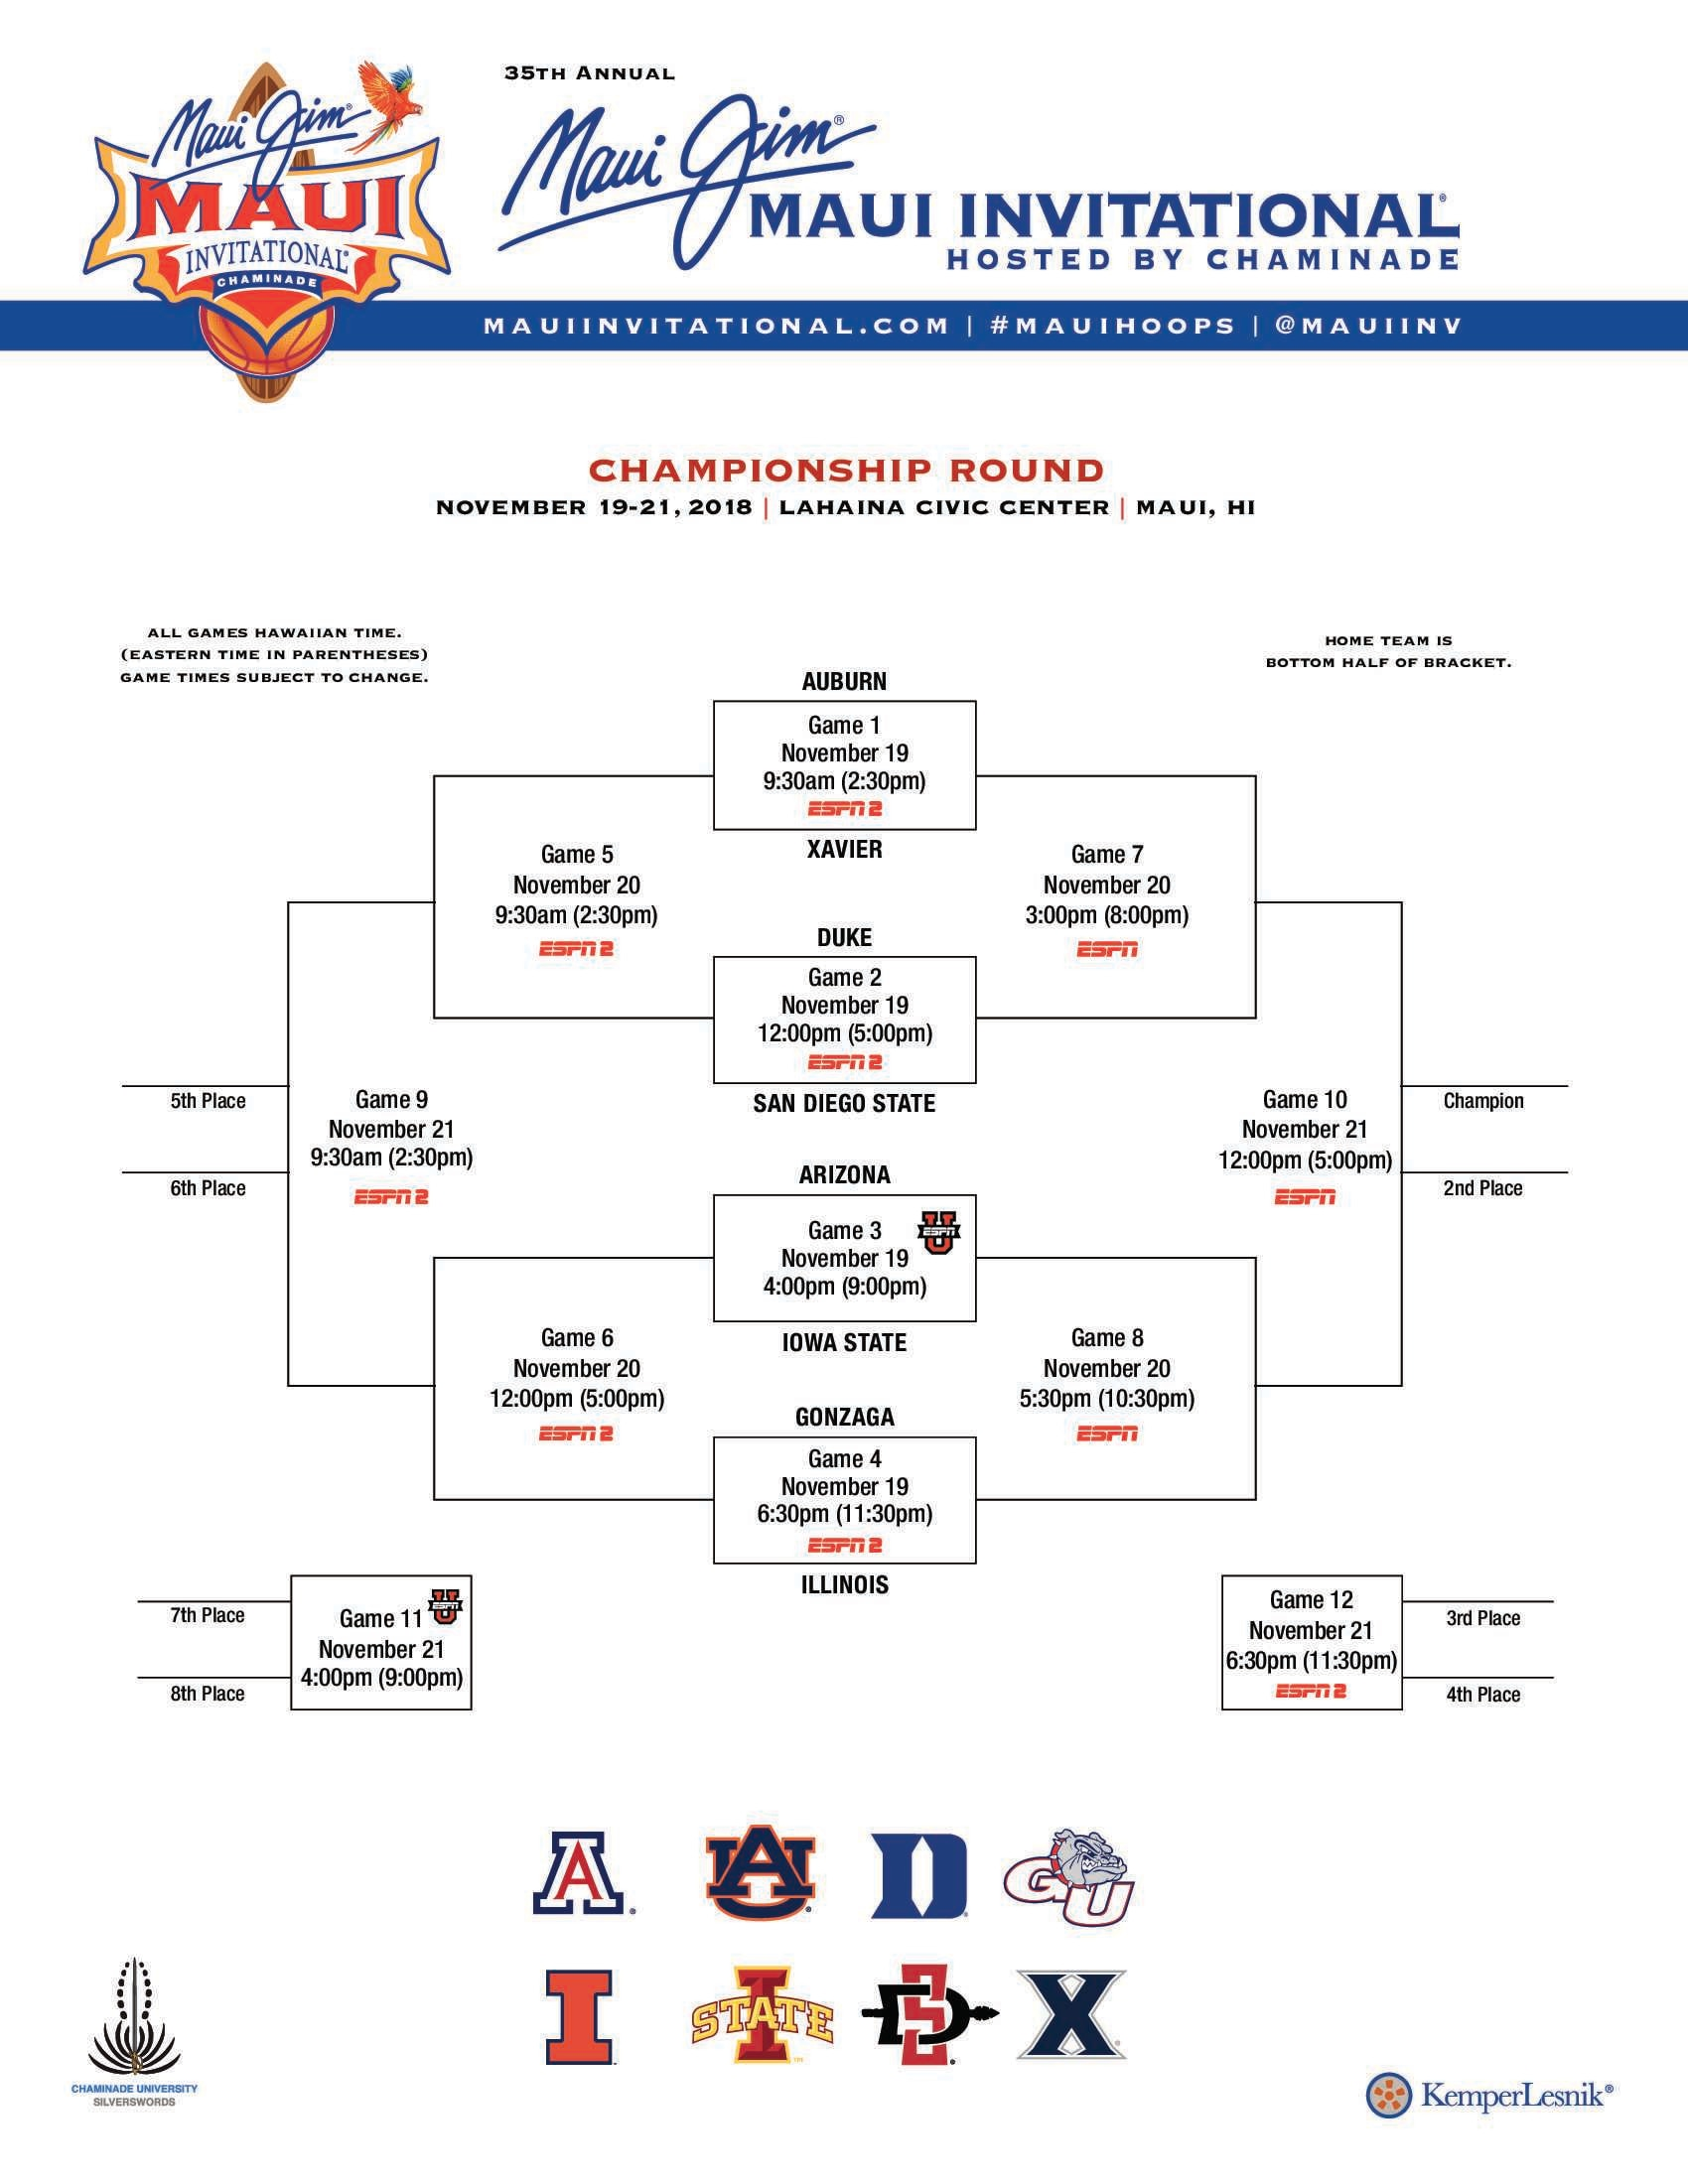 2018 Maui Invitational: Schedule, bracket, scores | NCAA.com